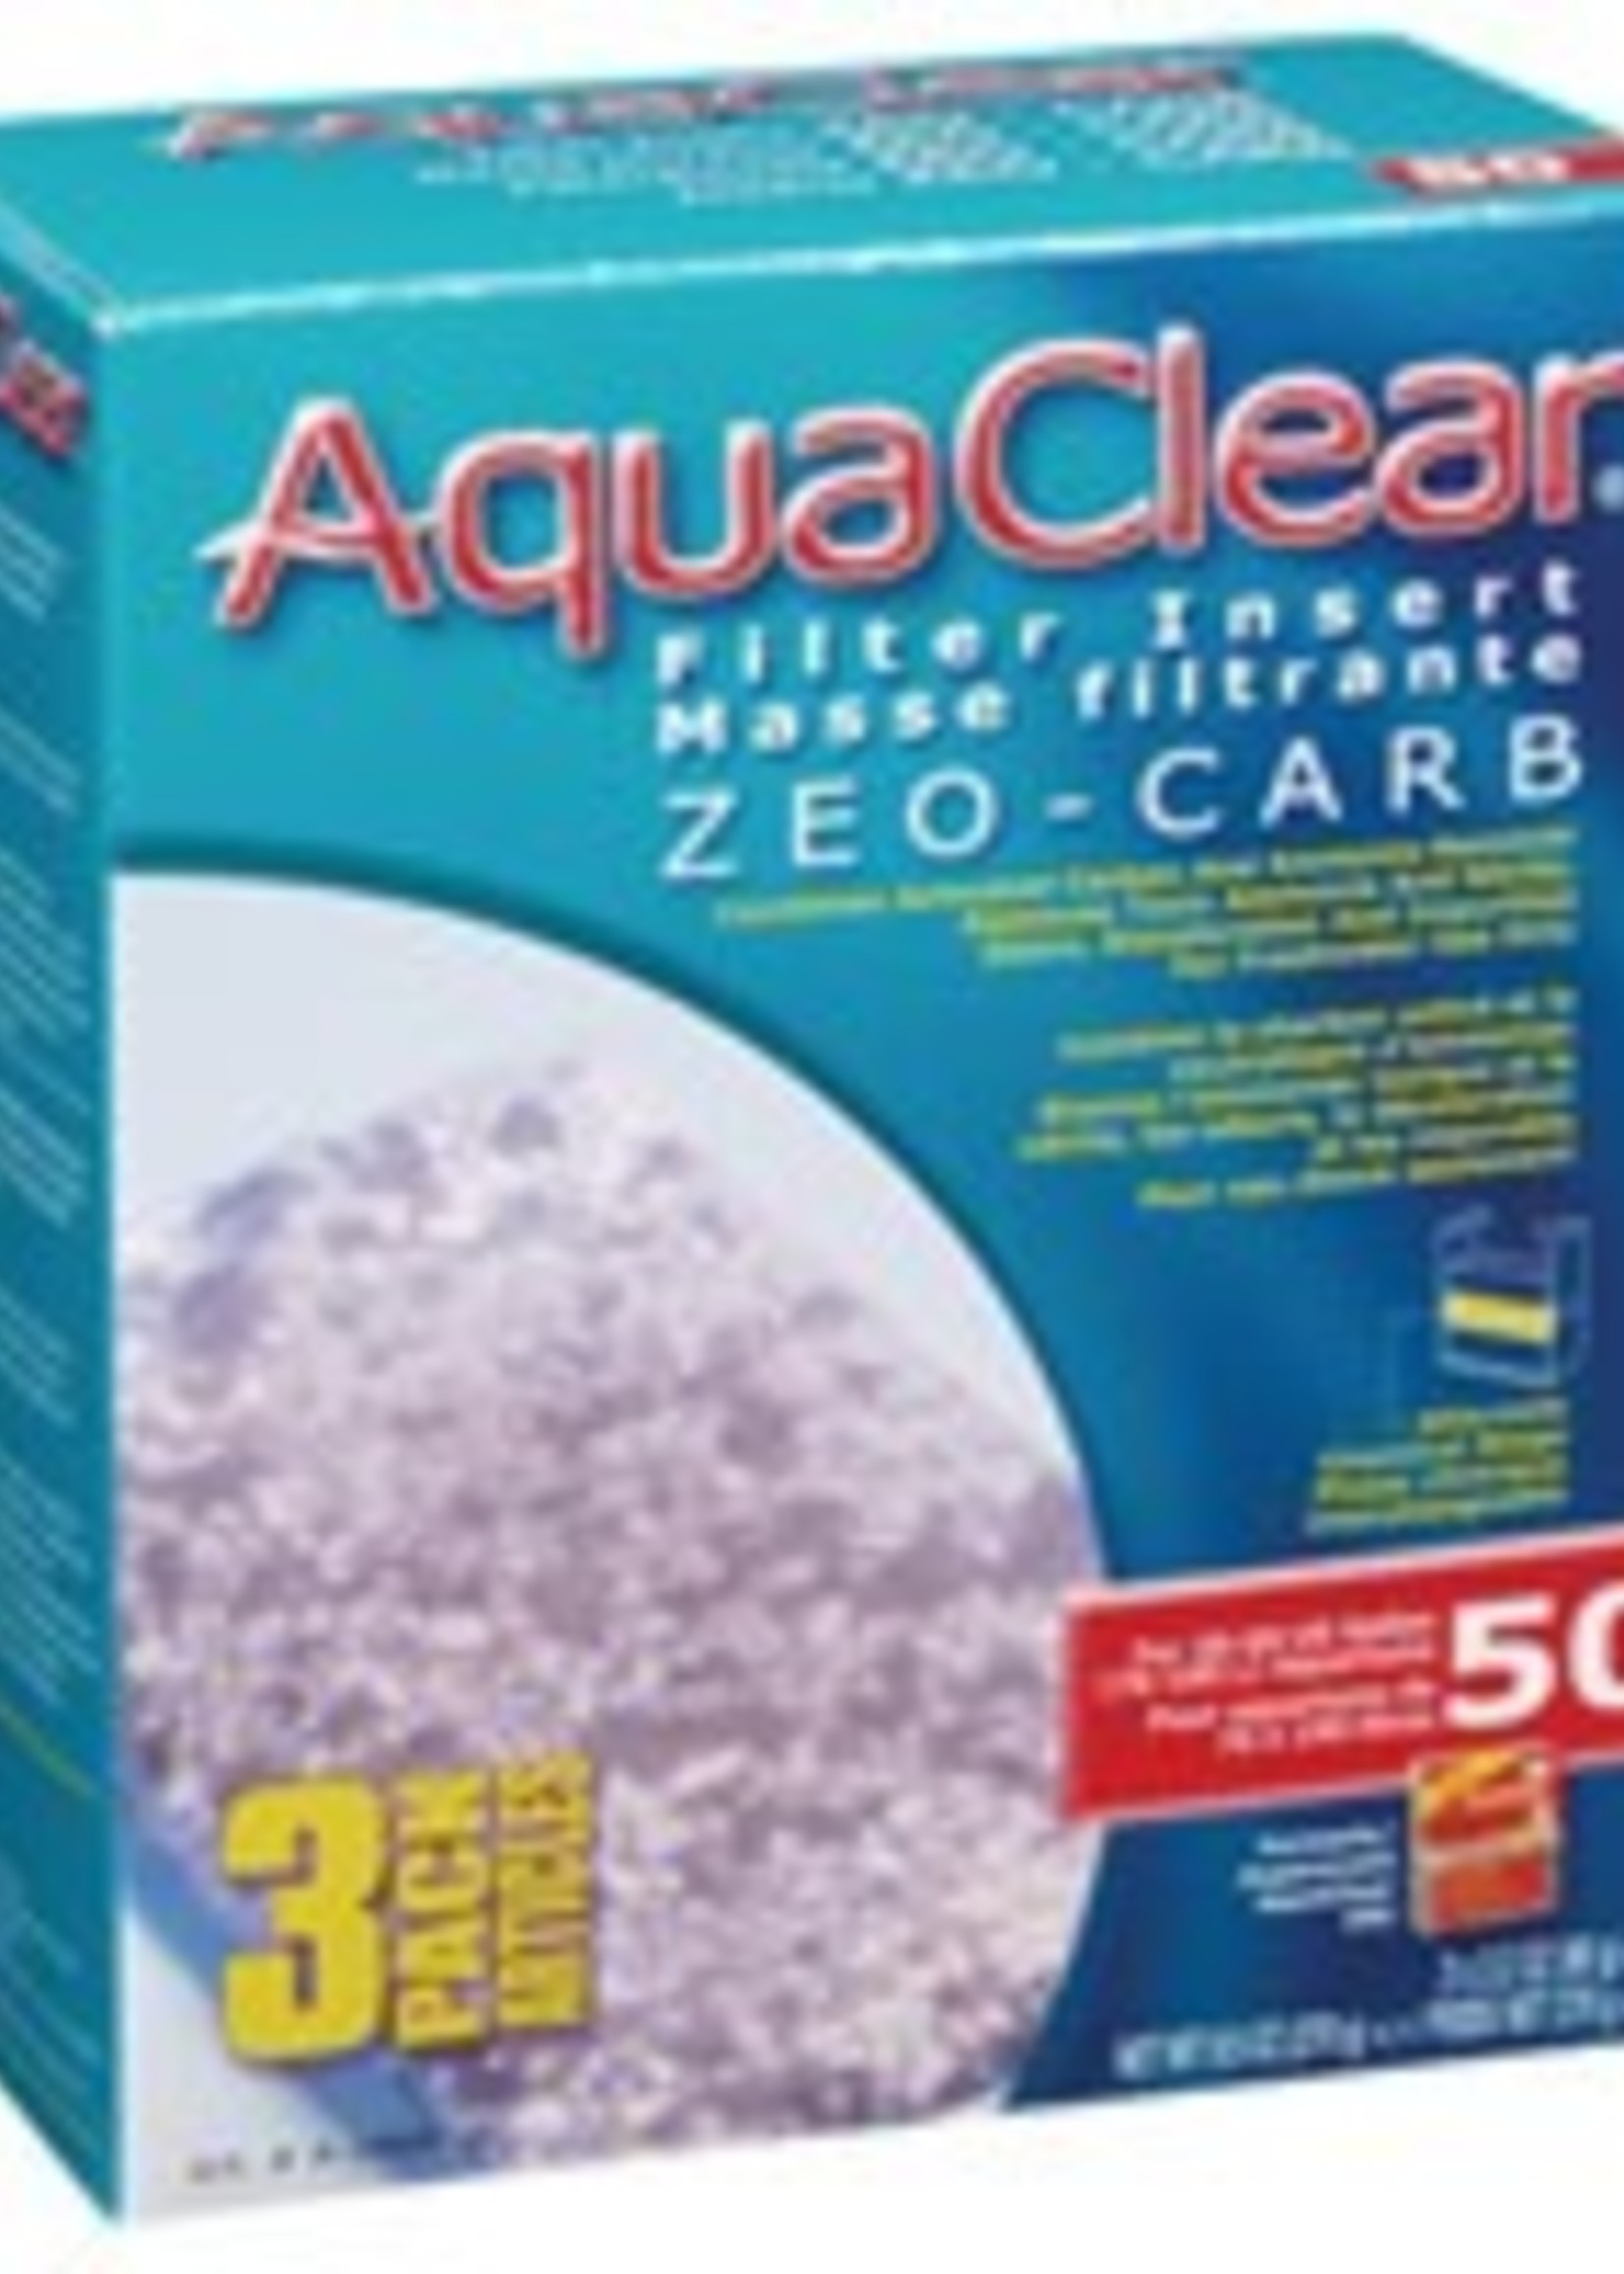 AquaClear 50 Zeo-Carb Filter insert, 3 pack, 270 g (9.5 oz )